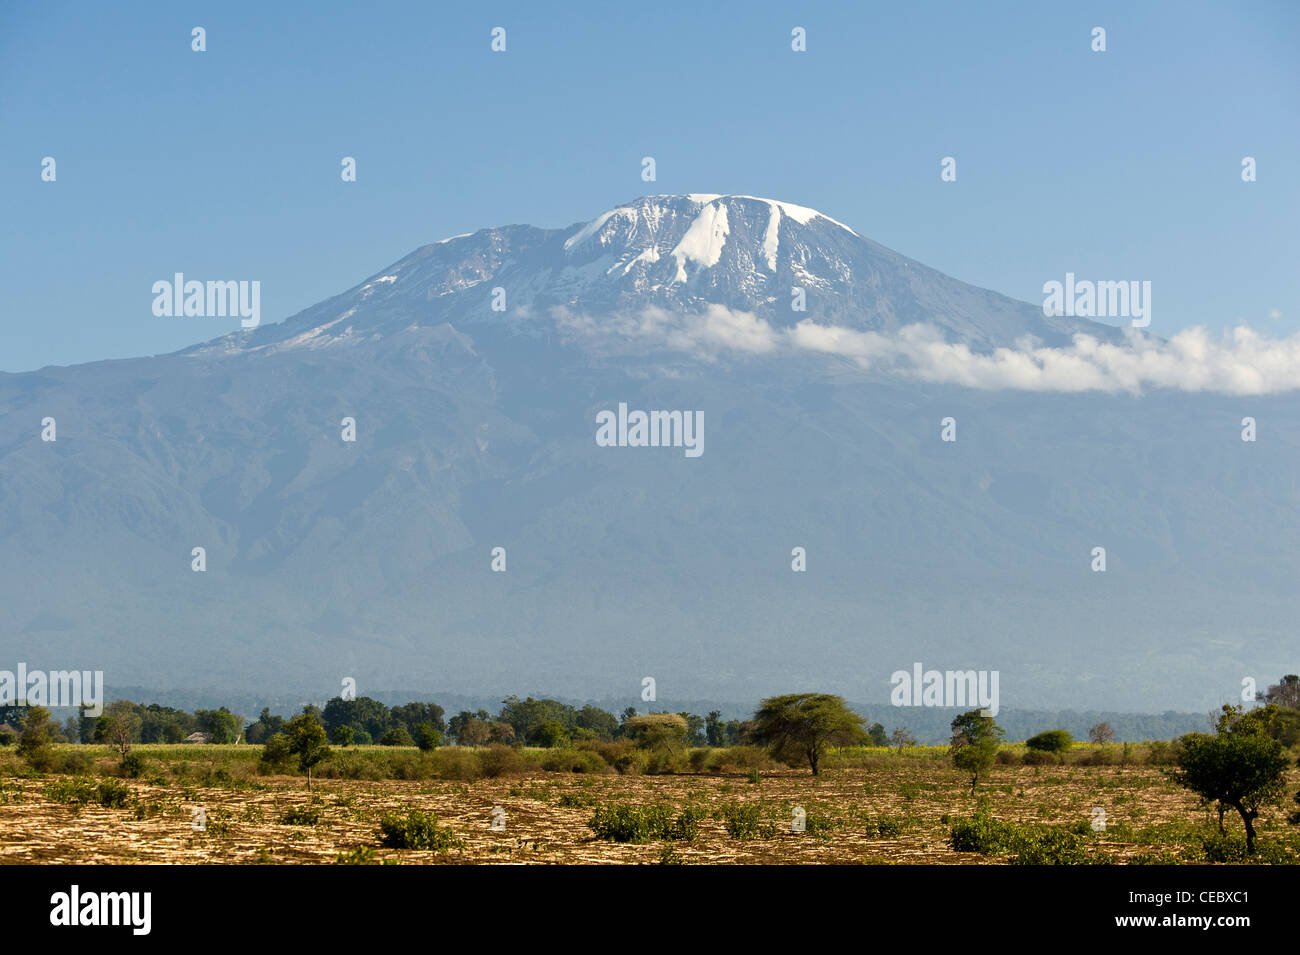 Kilimanjaro and agriculture fields during dry season in Moshi Tanzania - Stock Image